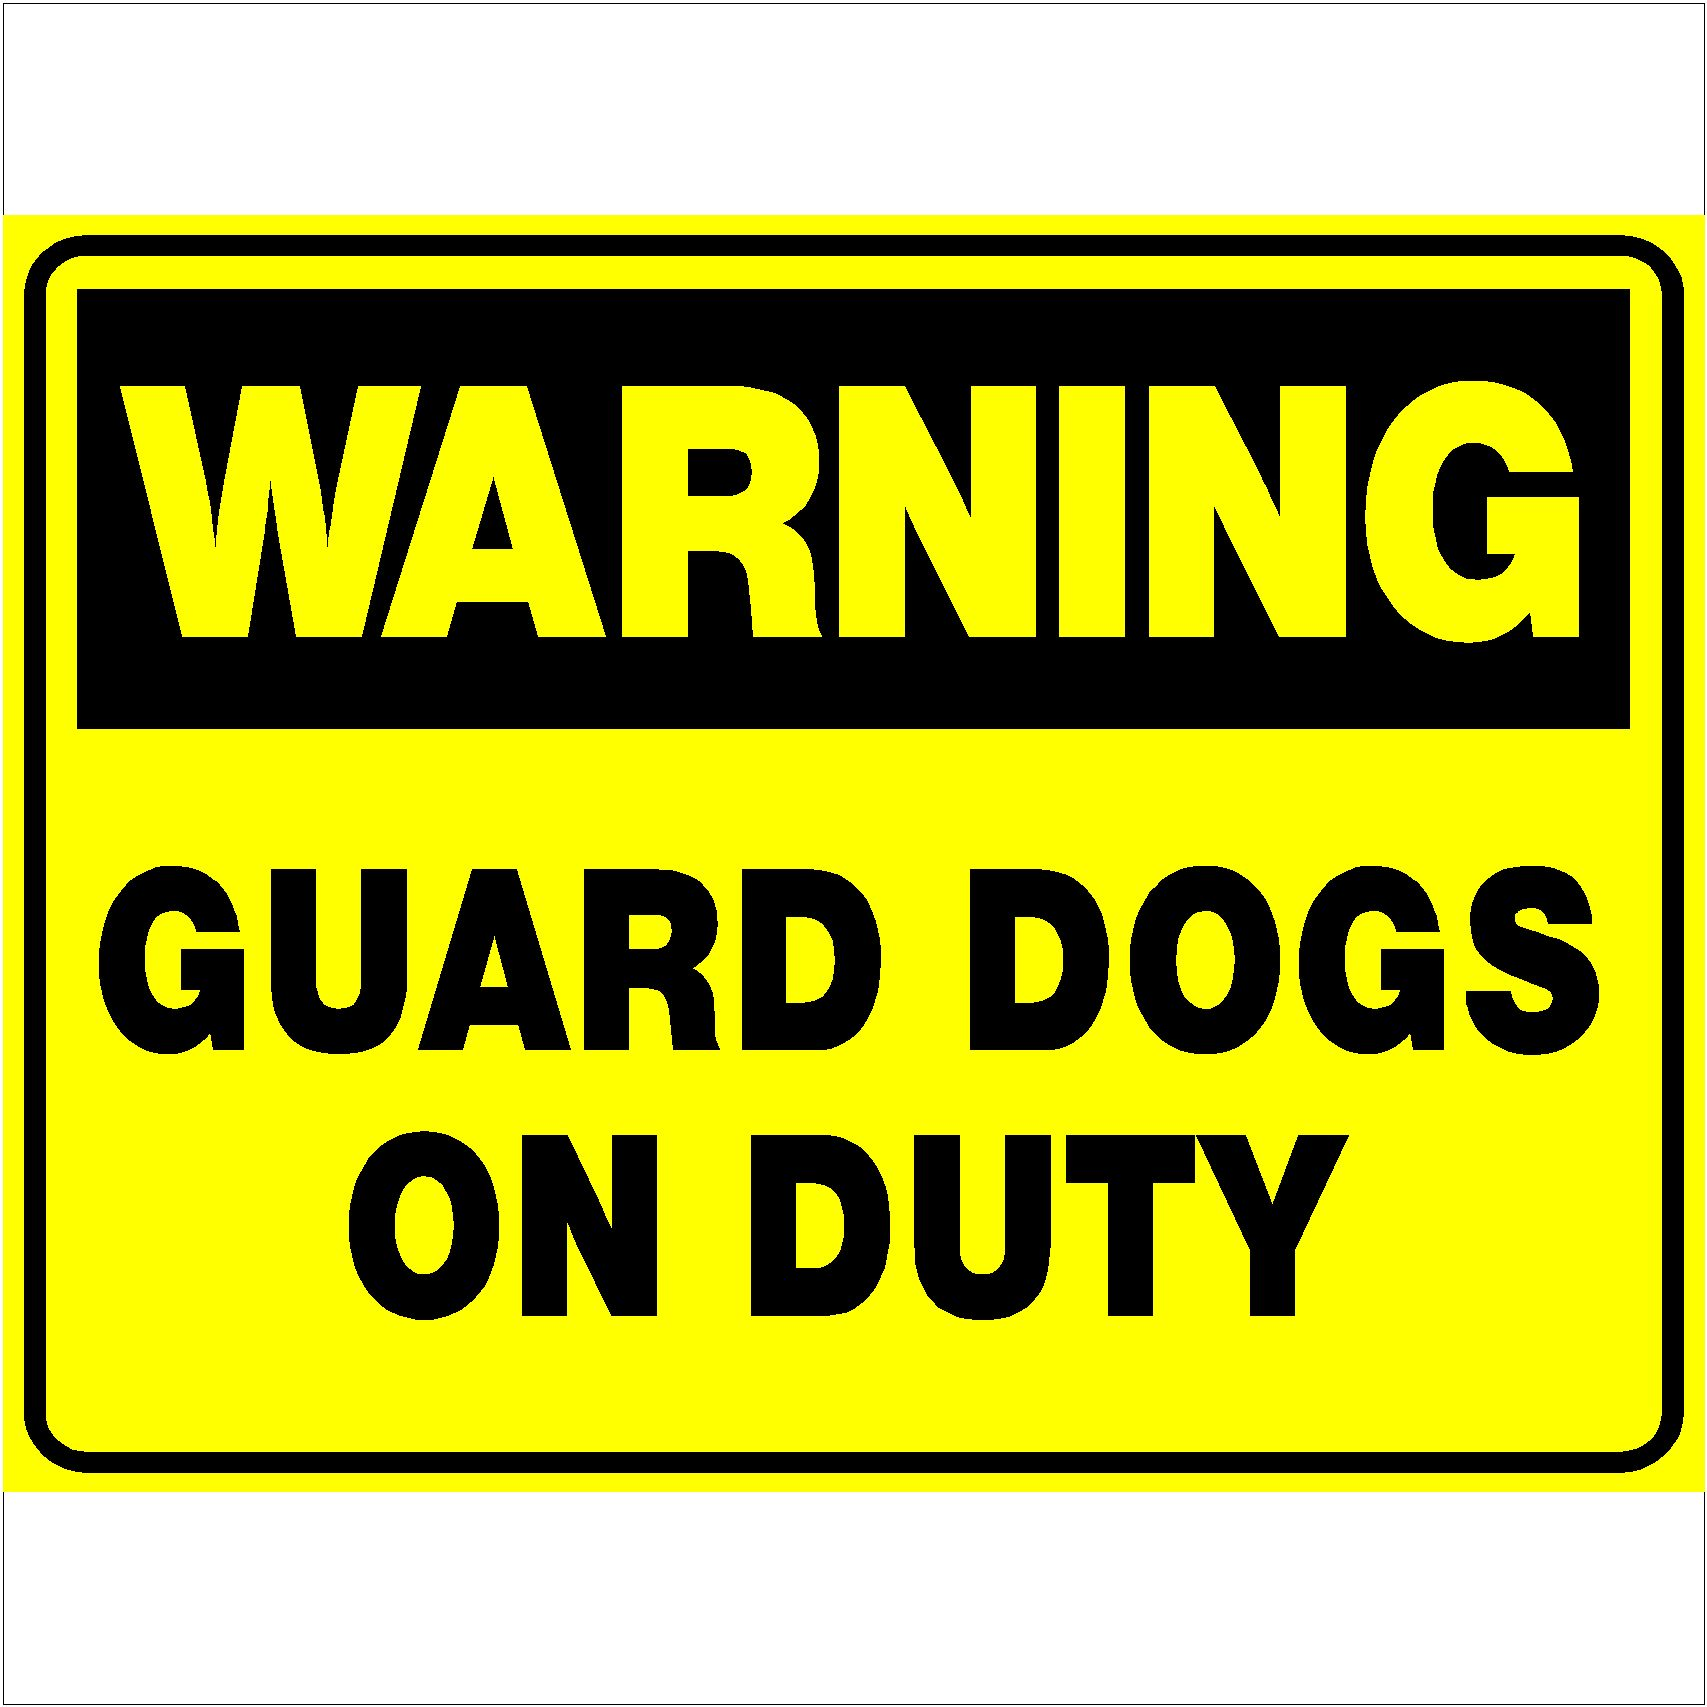 Warning Guard Dogs On Duty